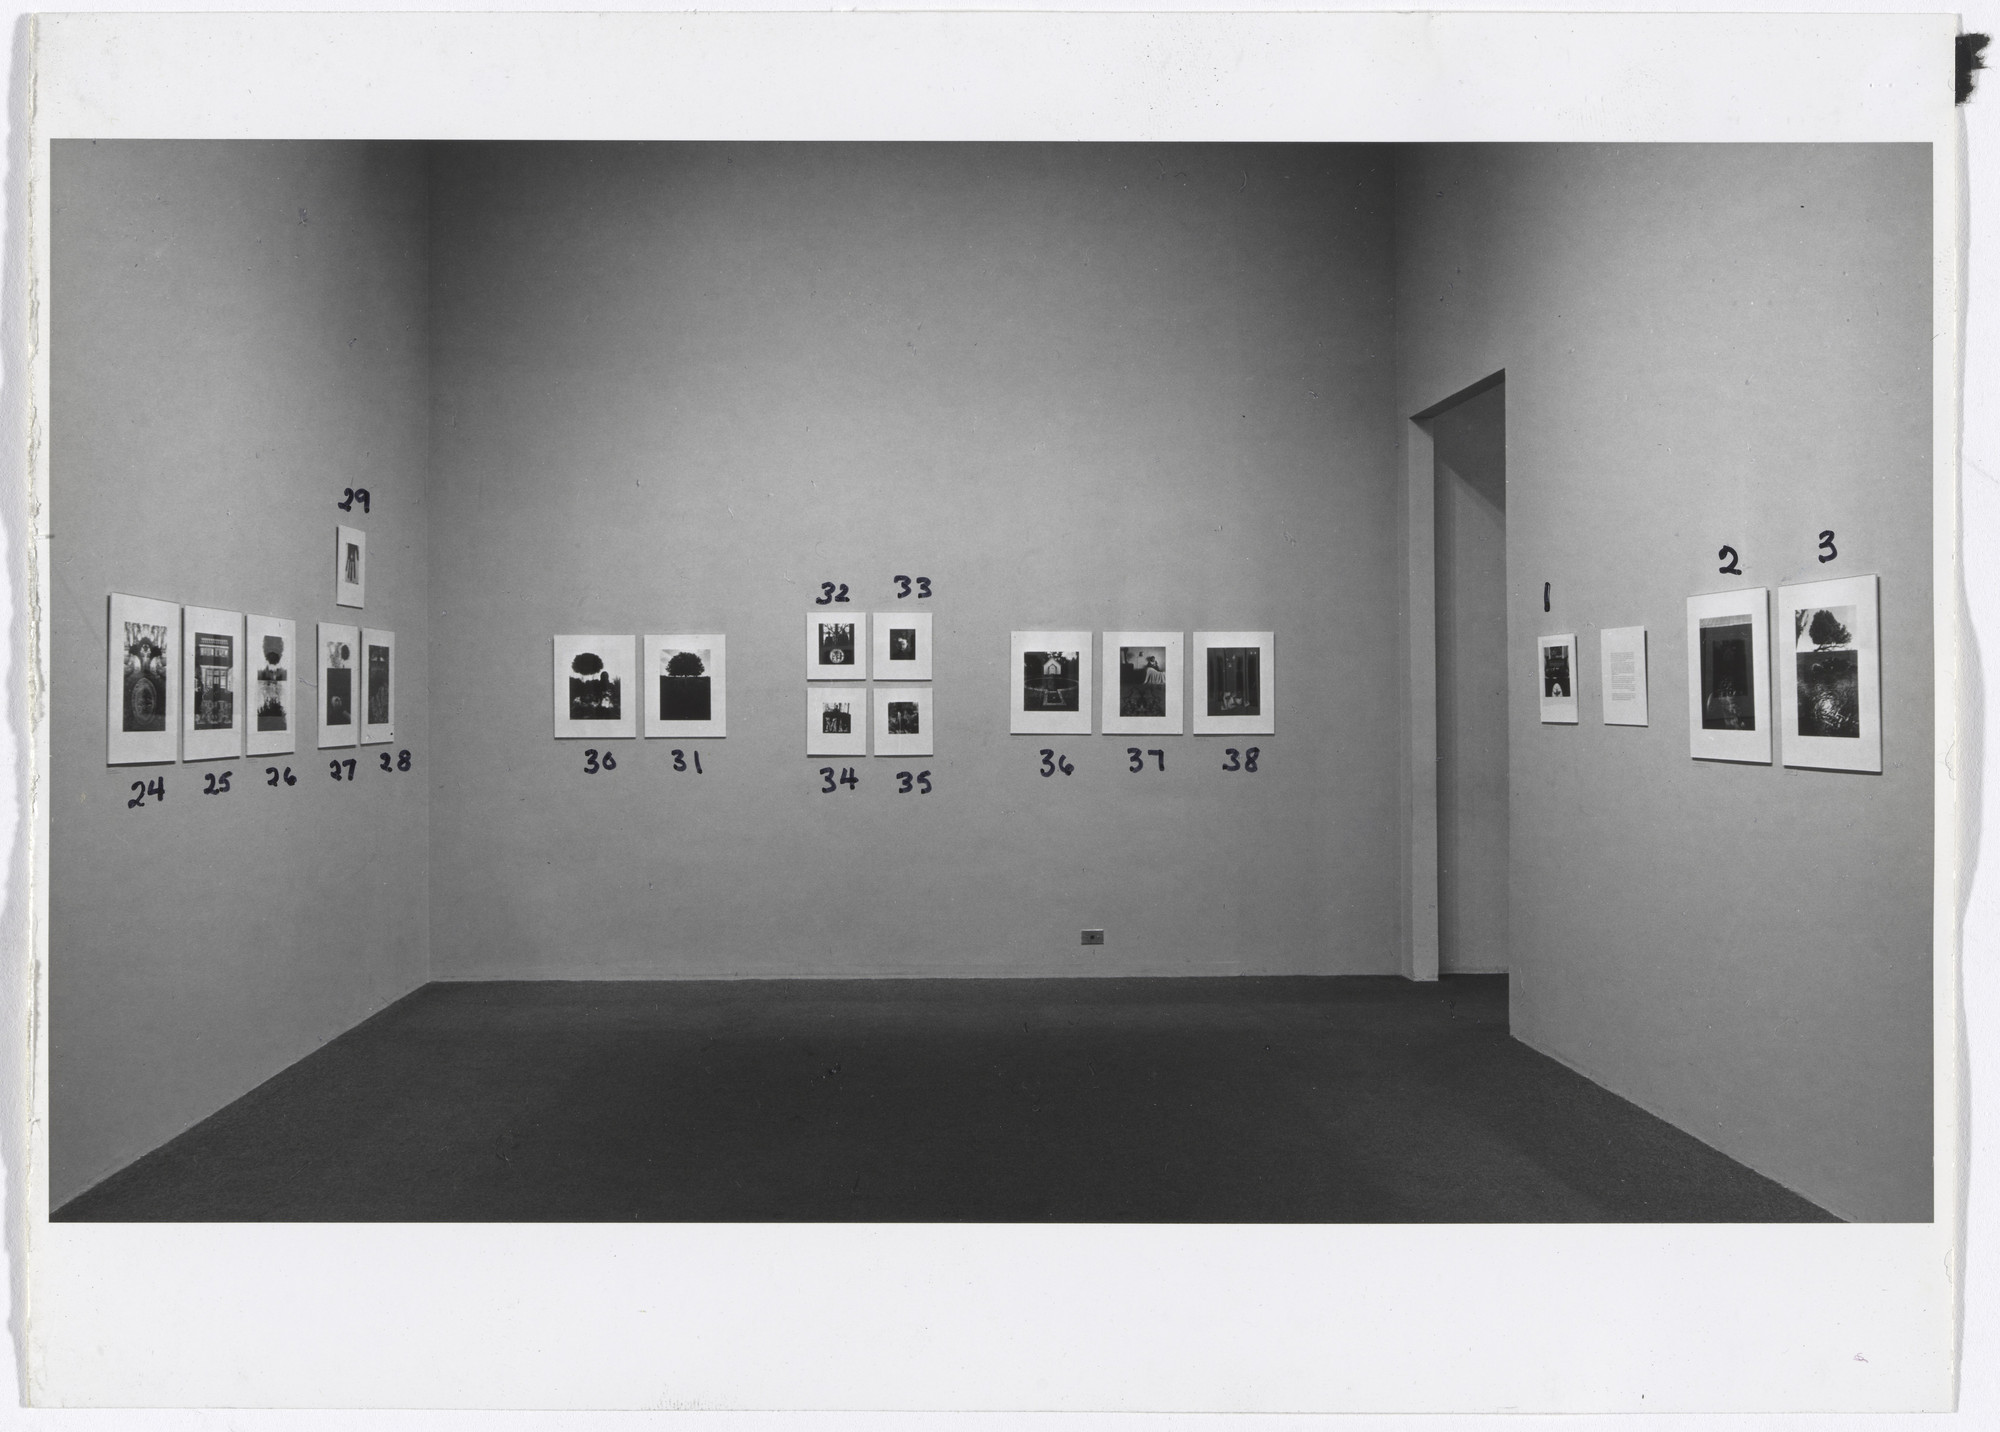 "Installation view of the exhibition ""Jerry N. Uelsmann"" February 15–April 16, 1967. Photography Study Center, The Museum of Modern Art, New York. IN820.1. Photograph by R. Petersen, Jerry Uelsmann."